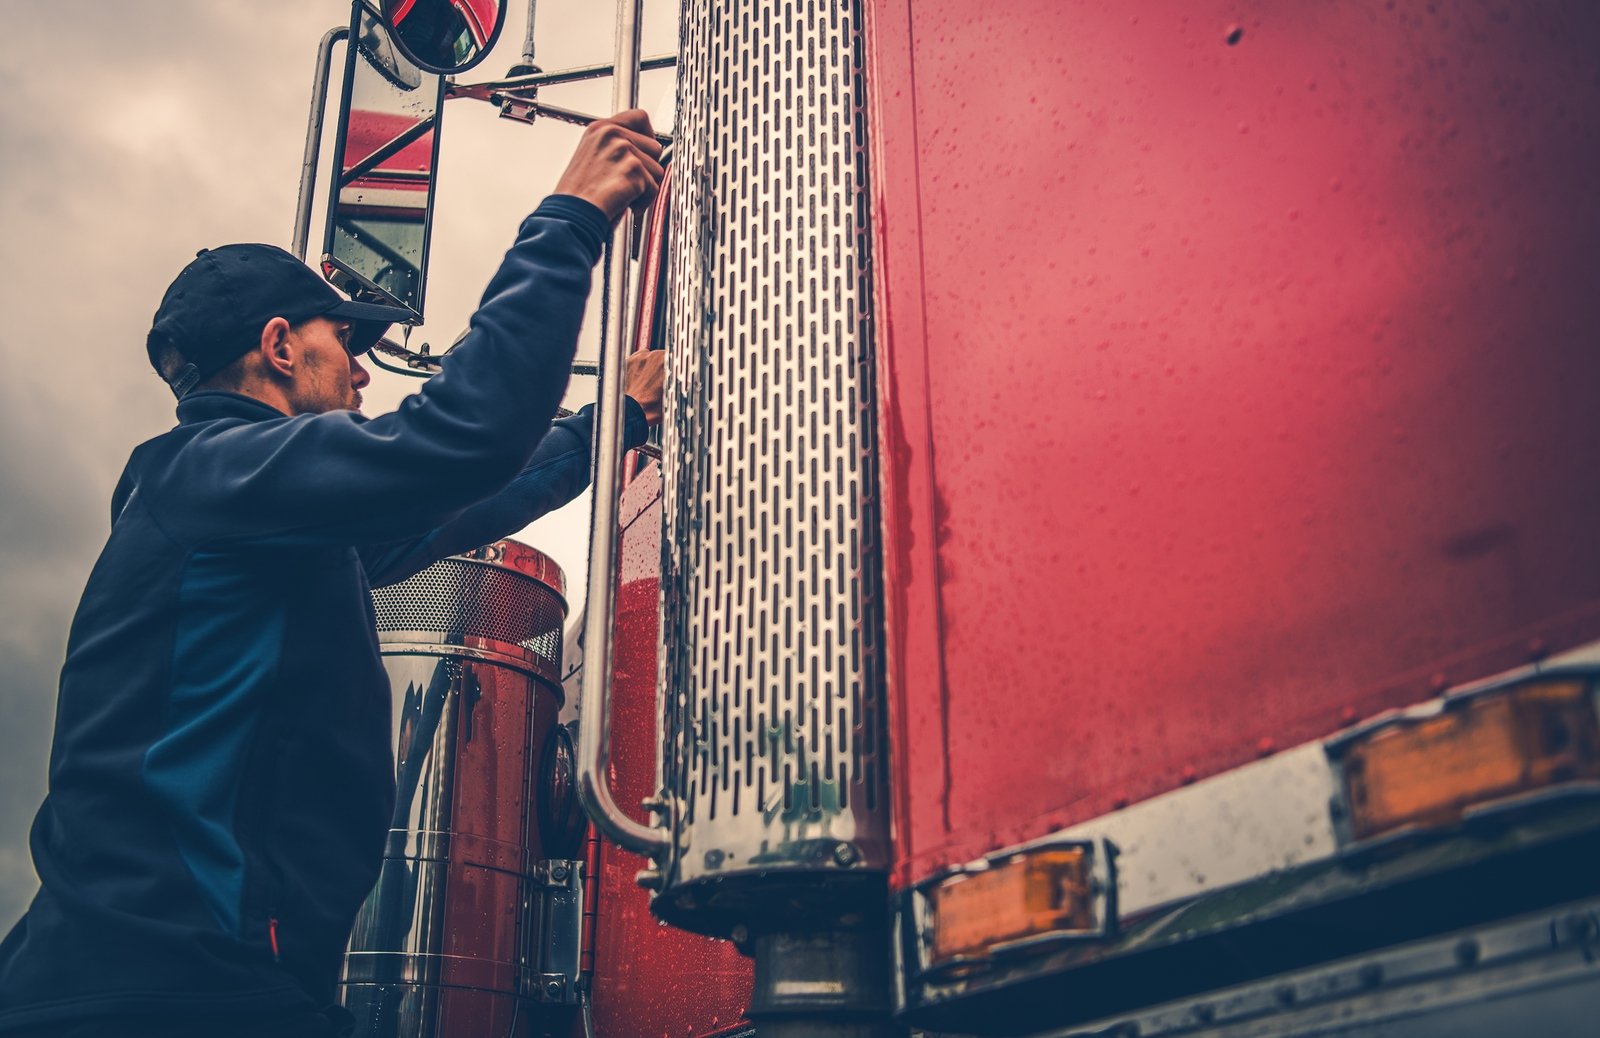 Is the trucking business profitable?